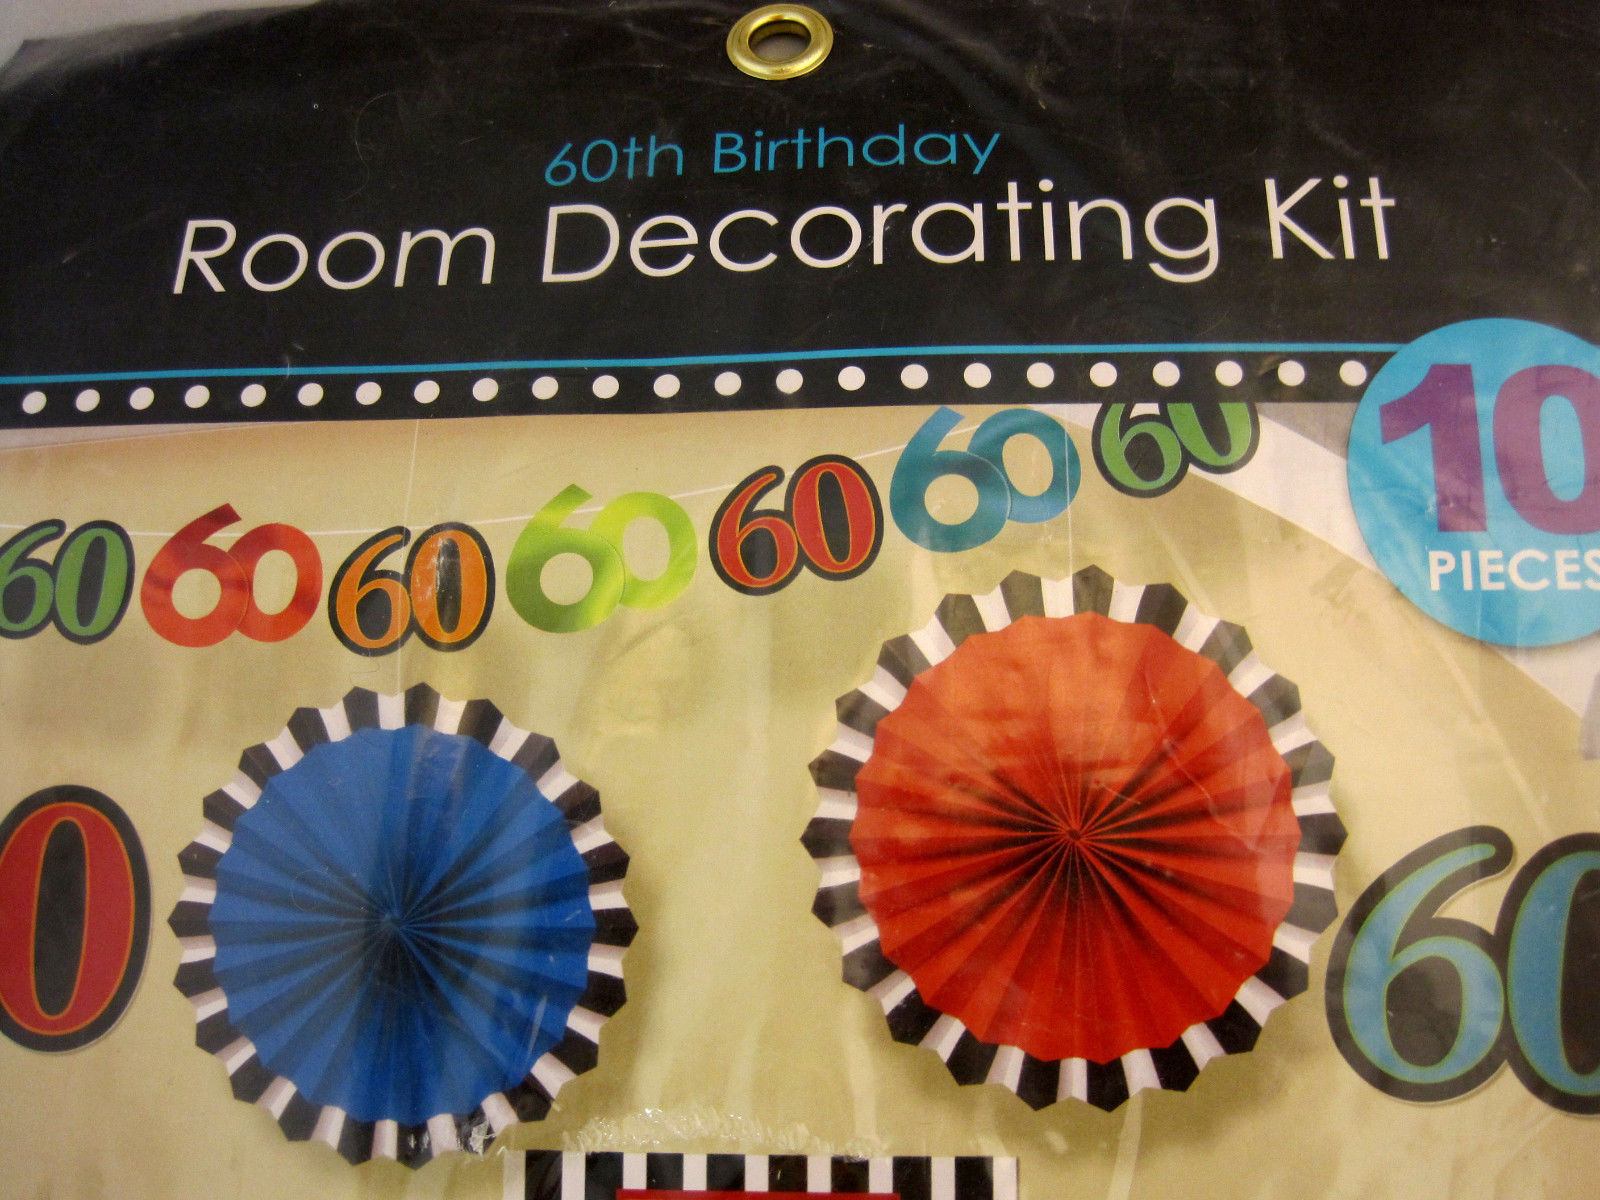 60th Birthday Room Decorating Kit 10 Pieces